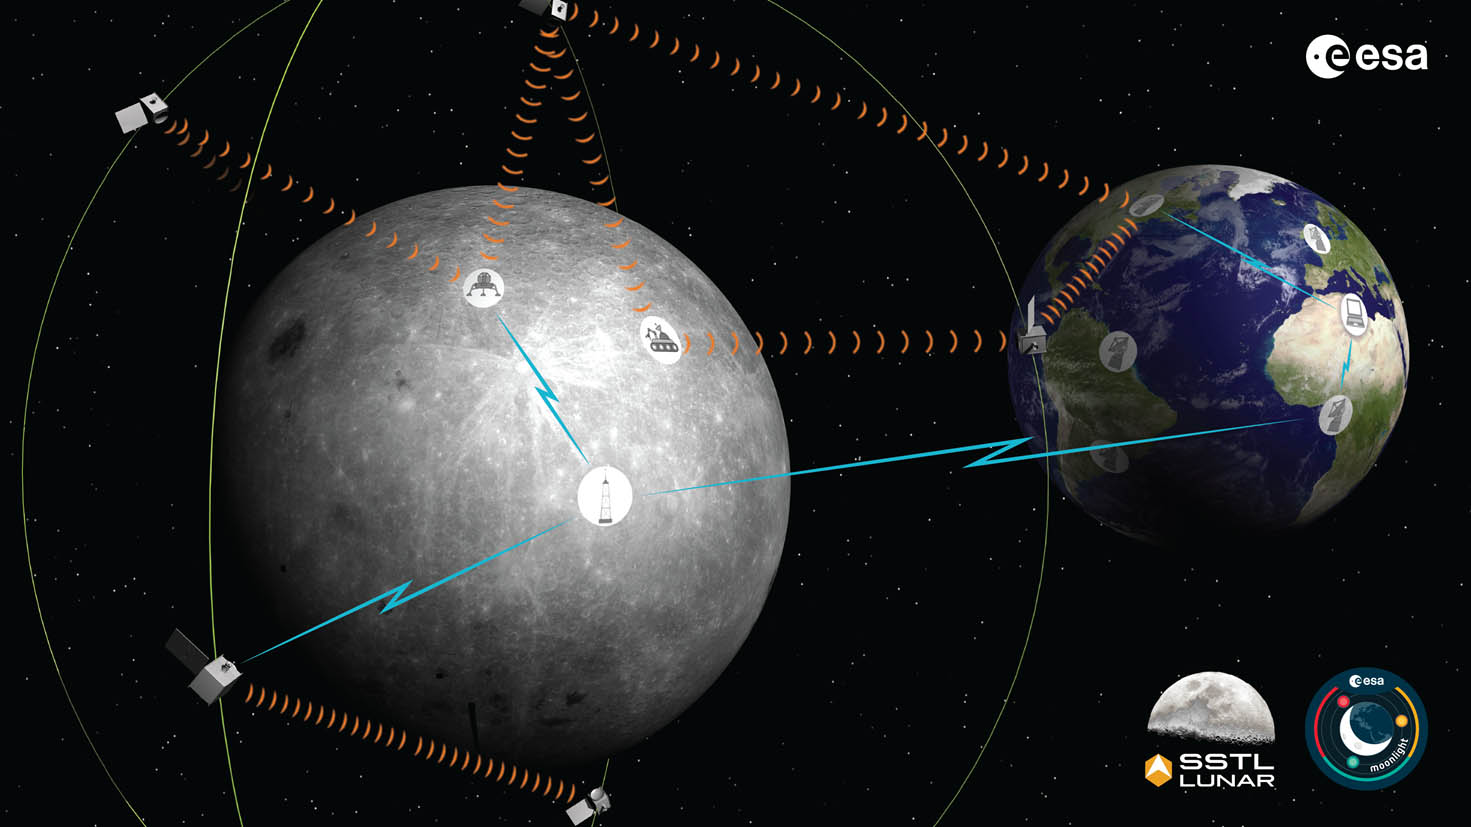 <p>Europe unveils plans to Deliver'GPS' and Skype to the moon with satellites thumbnail